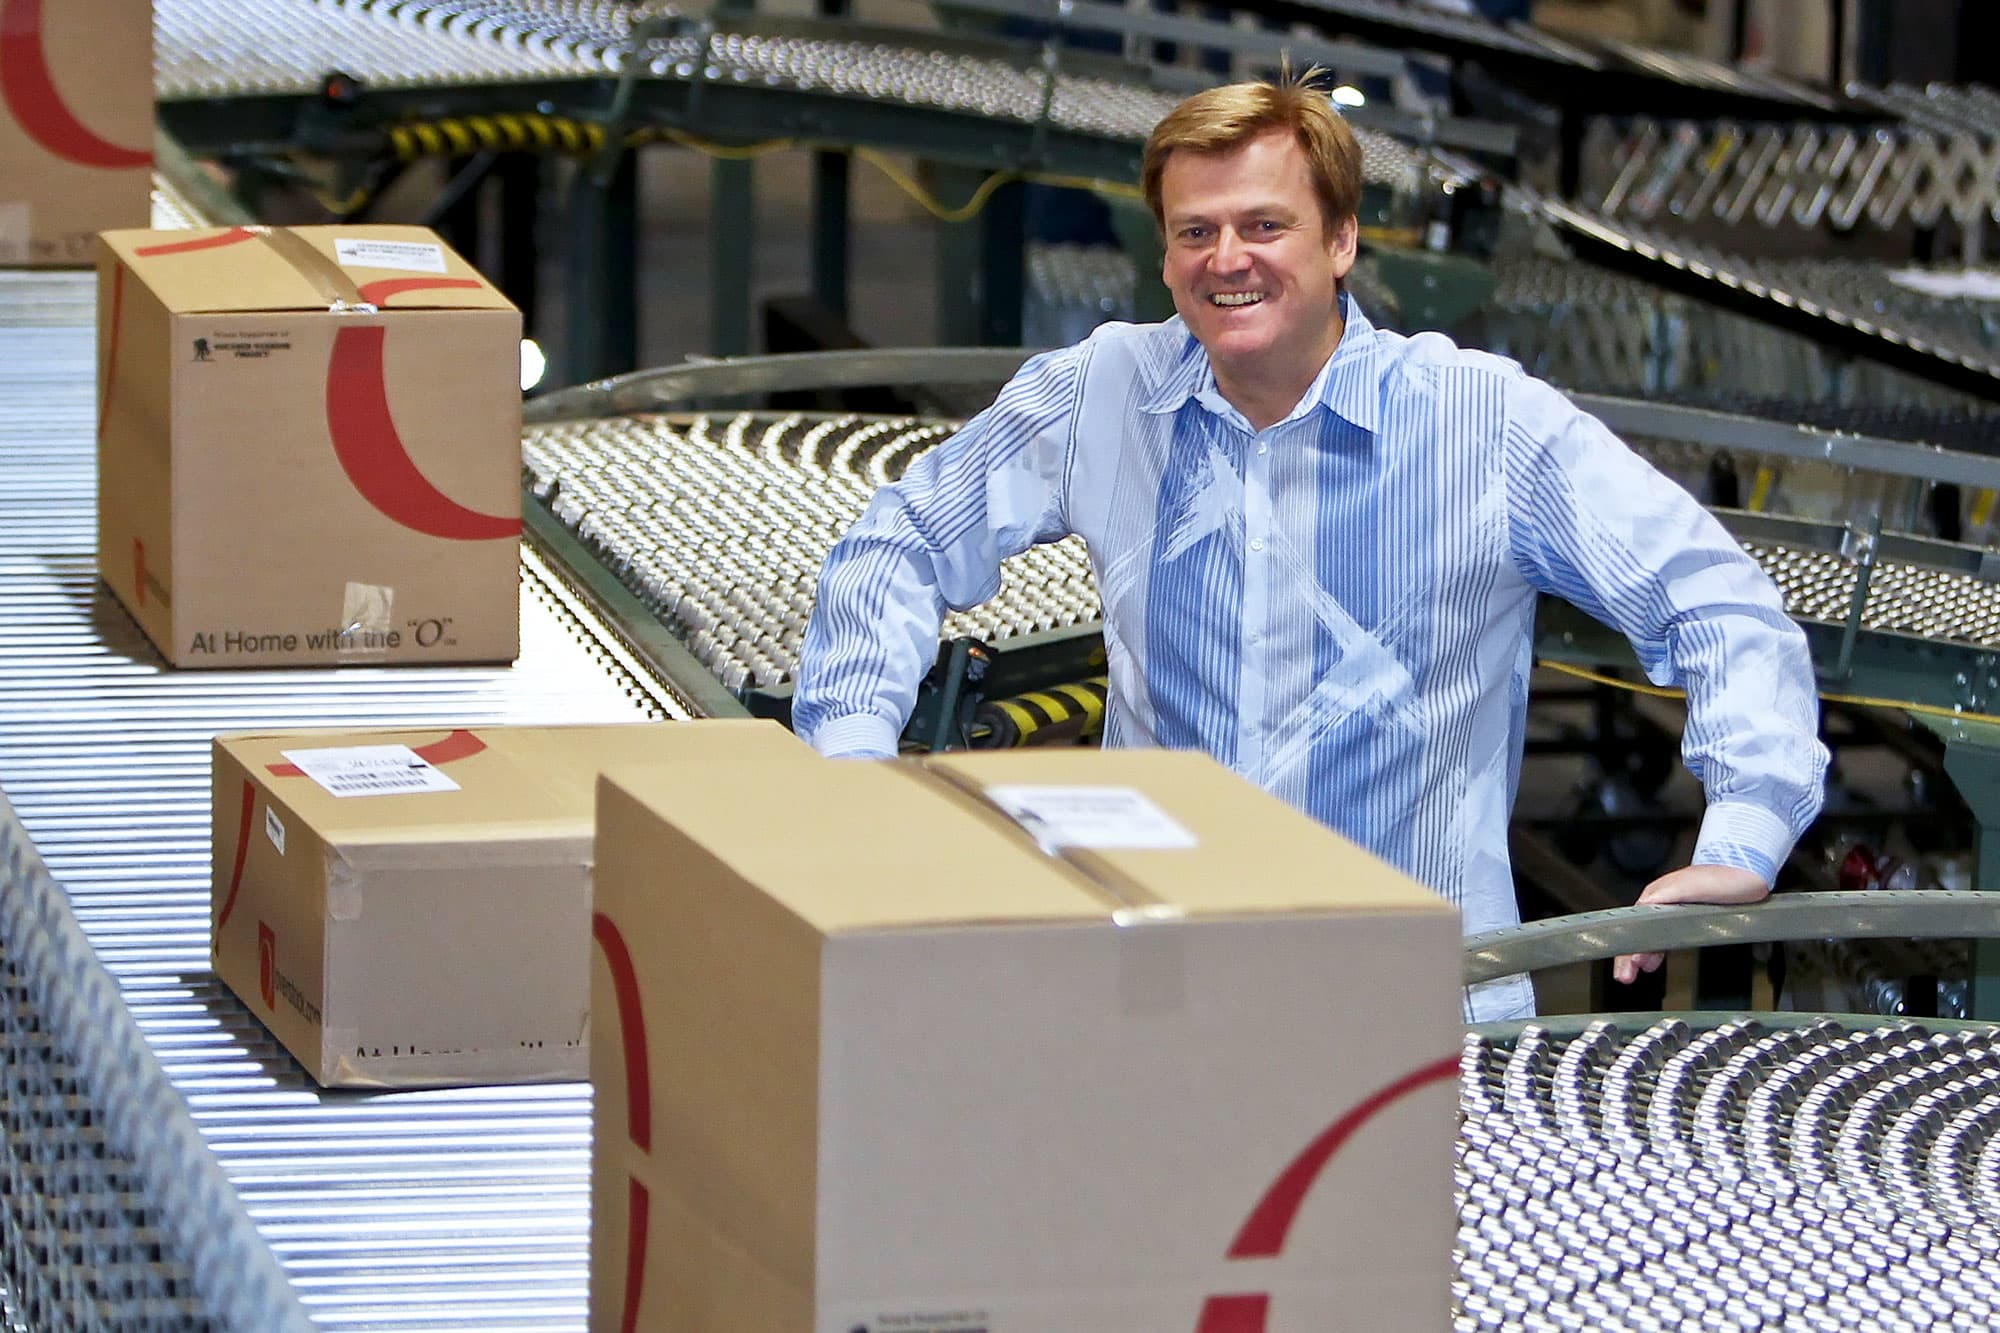 Overstock plunges for a third straight day after CEO comments on 'Deep State'